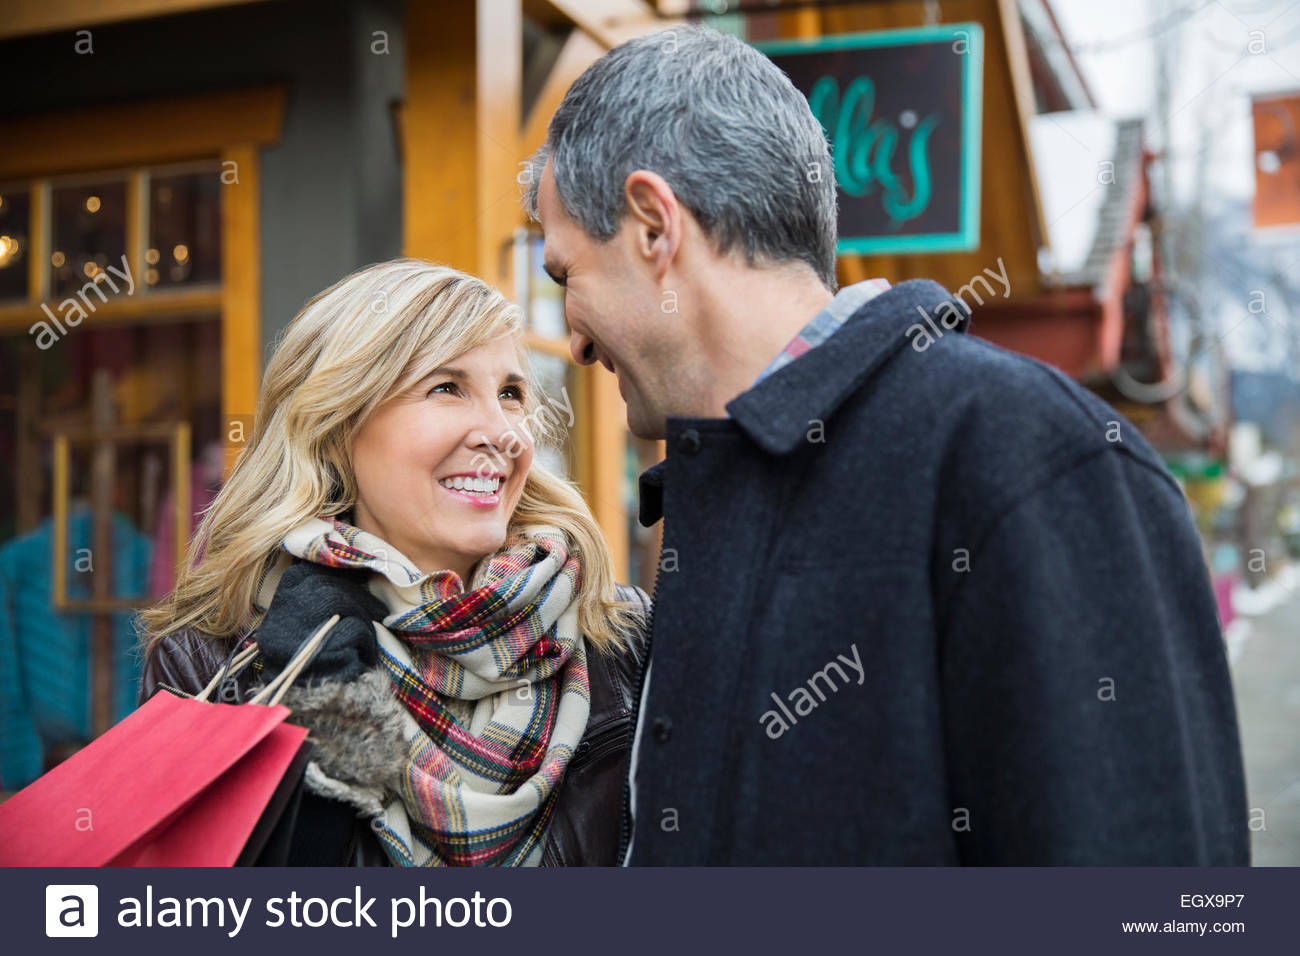 Smiling couple with shopping bag outside storefront - Stock Image